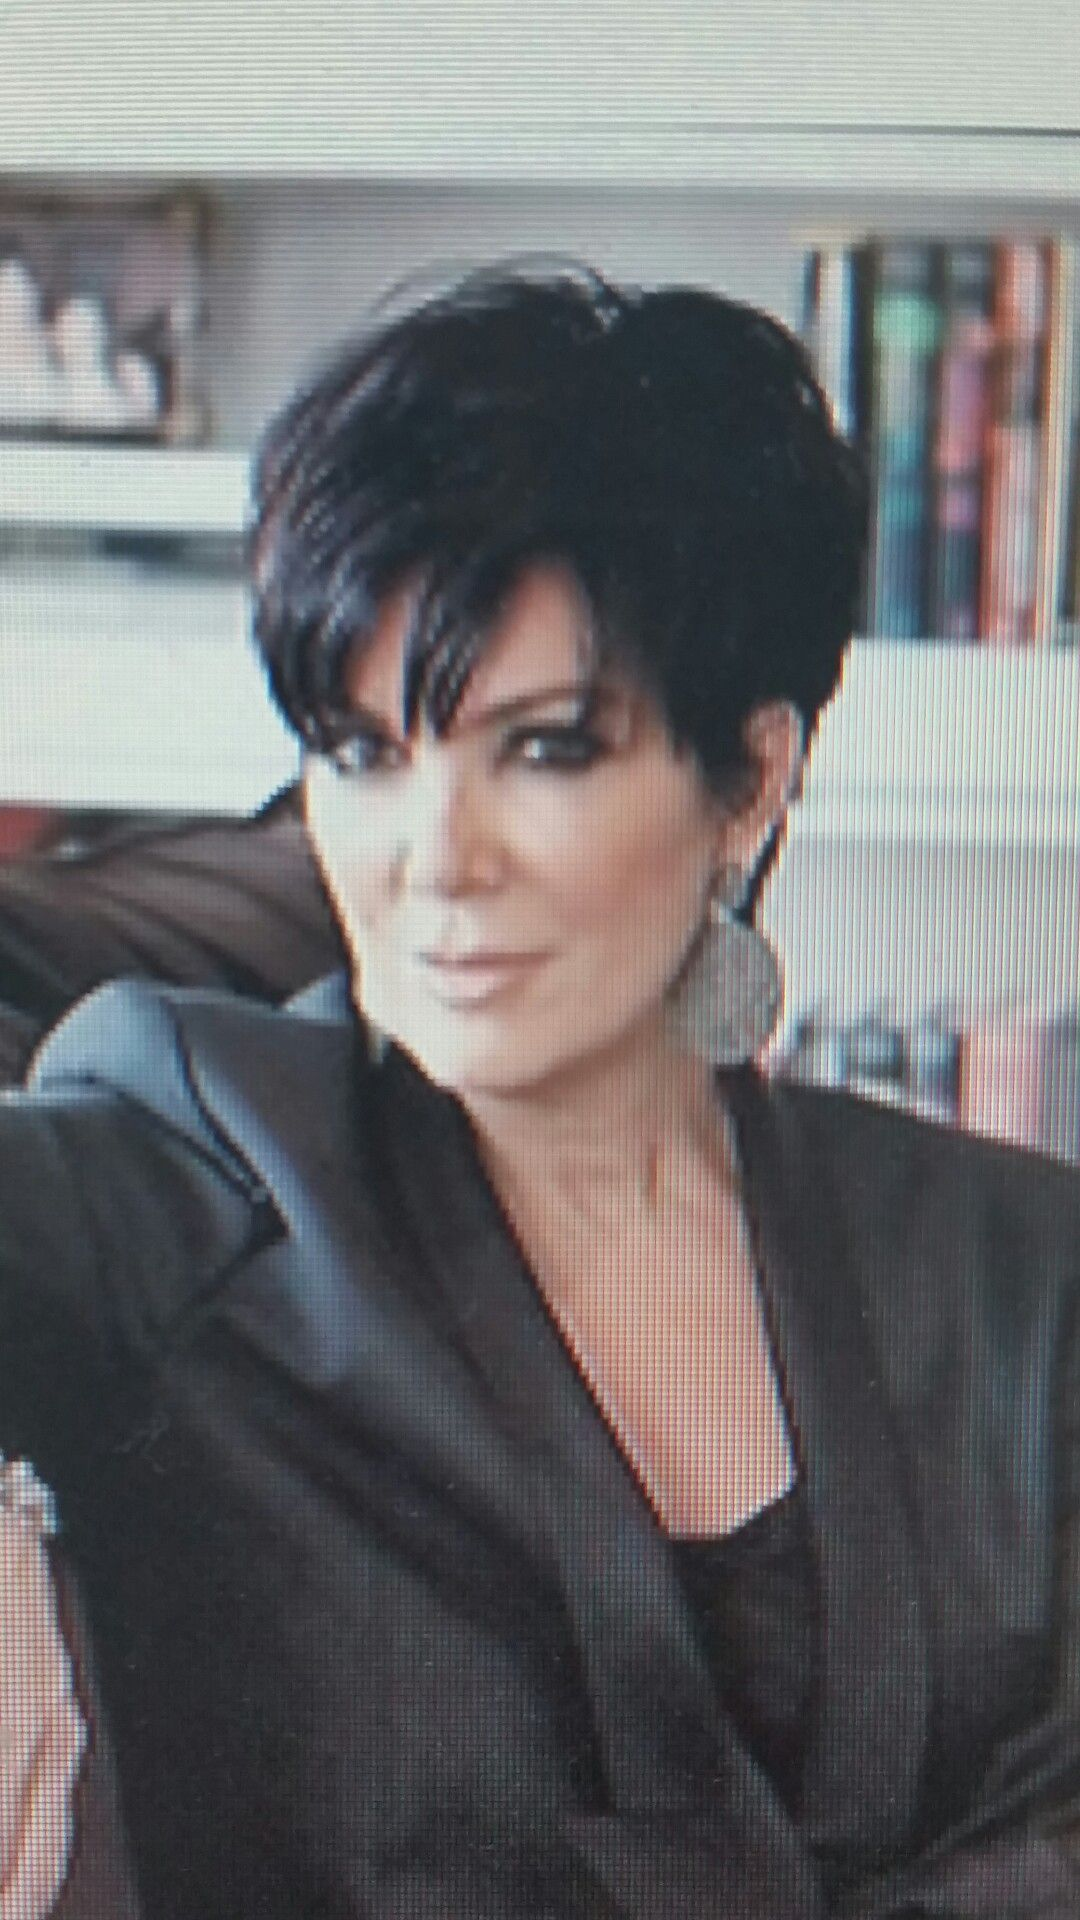 This Is The Look Sassy Hair Kris Jenner Hair Jenner Hair